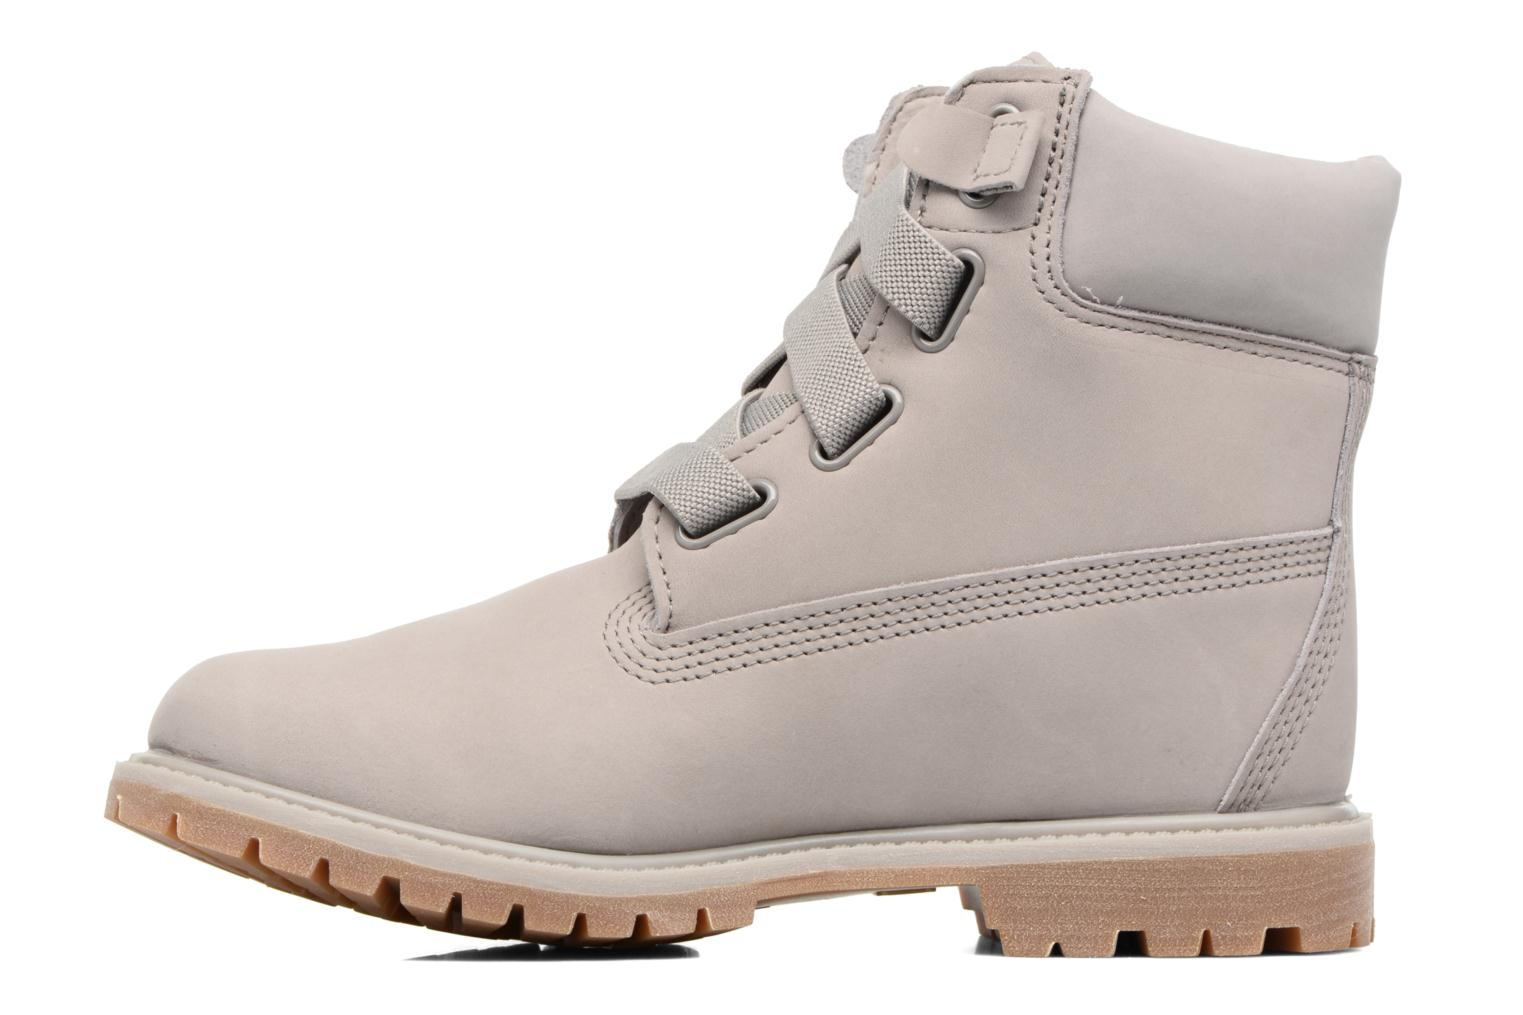 Bottines et boots Timberland 6in Premium Boot - W Gris vue face